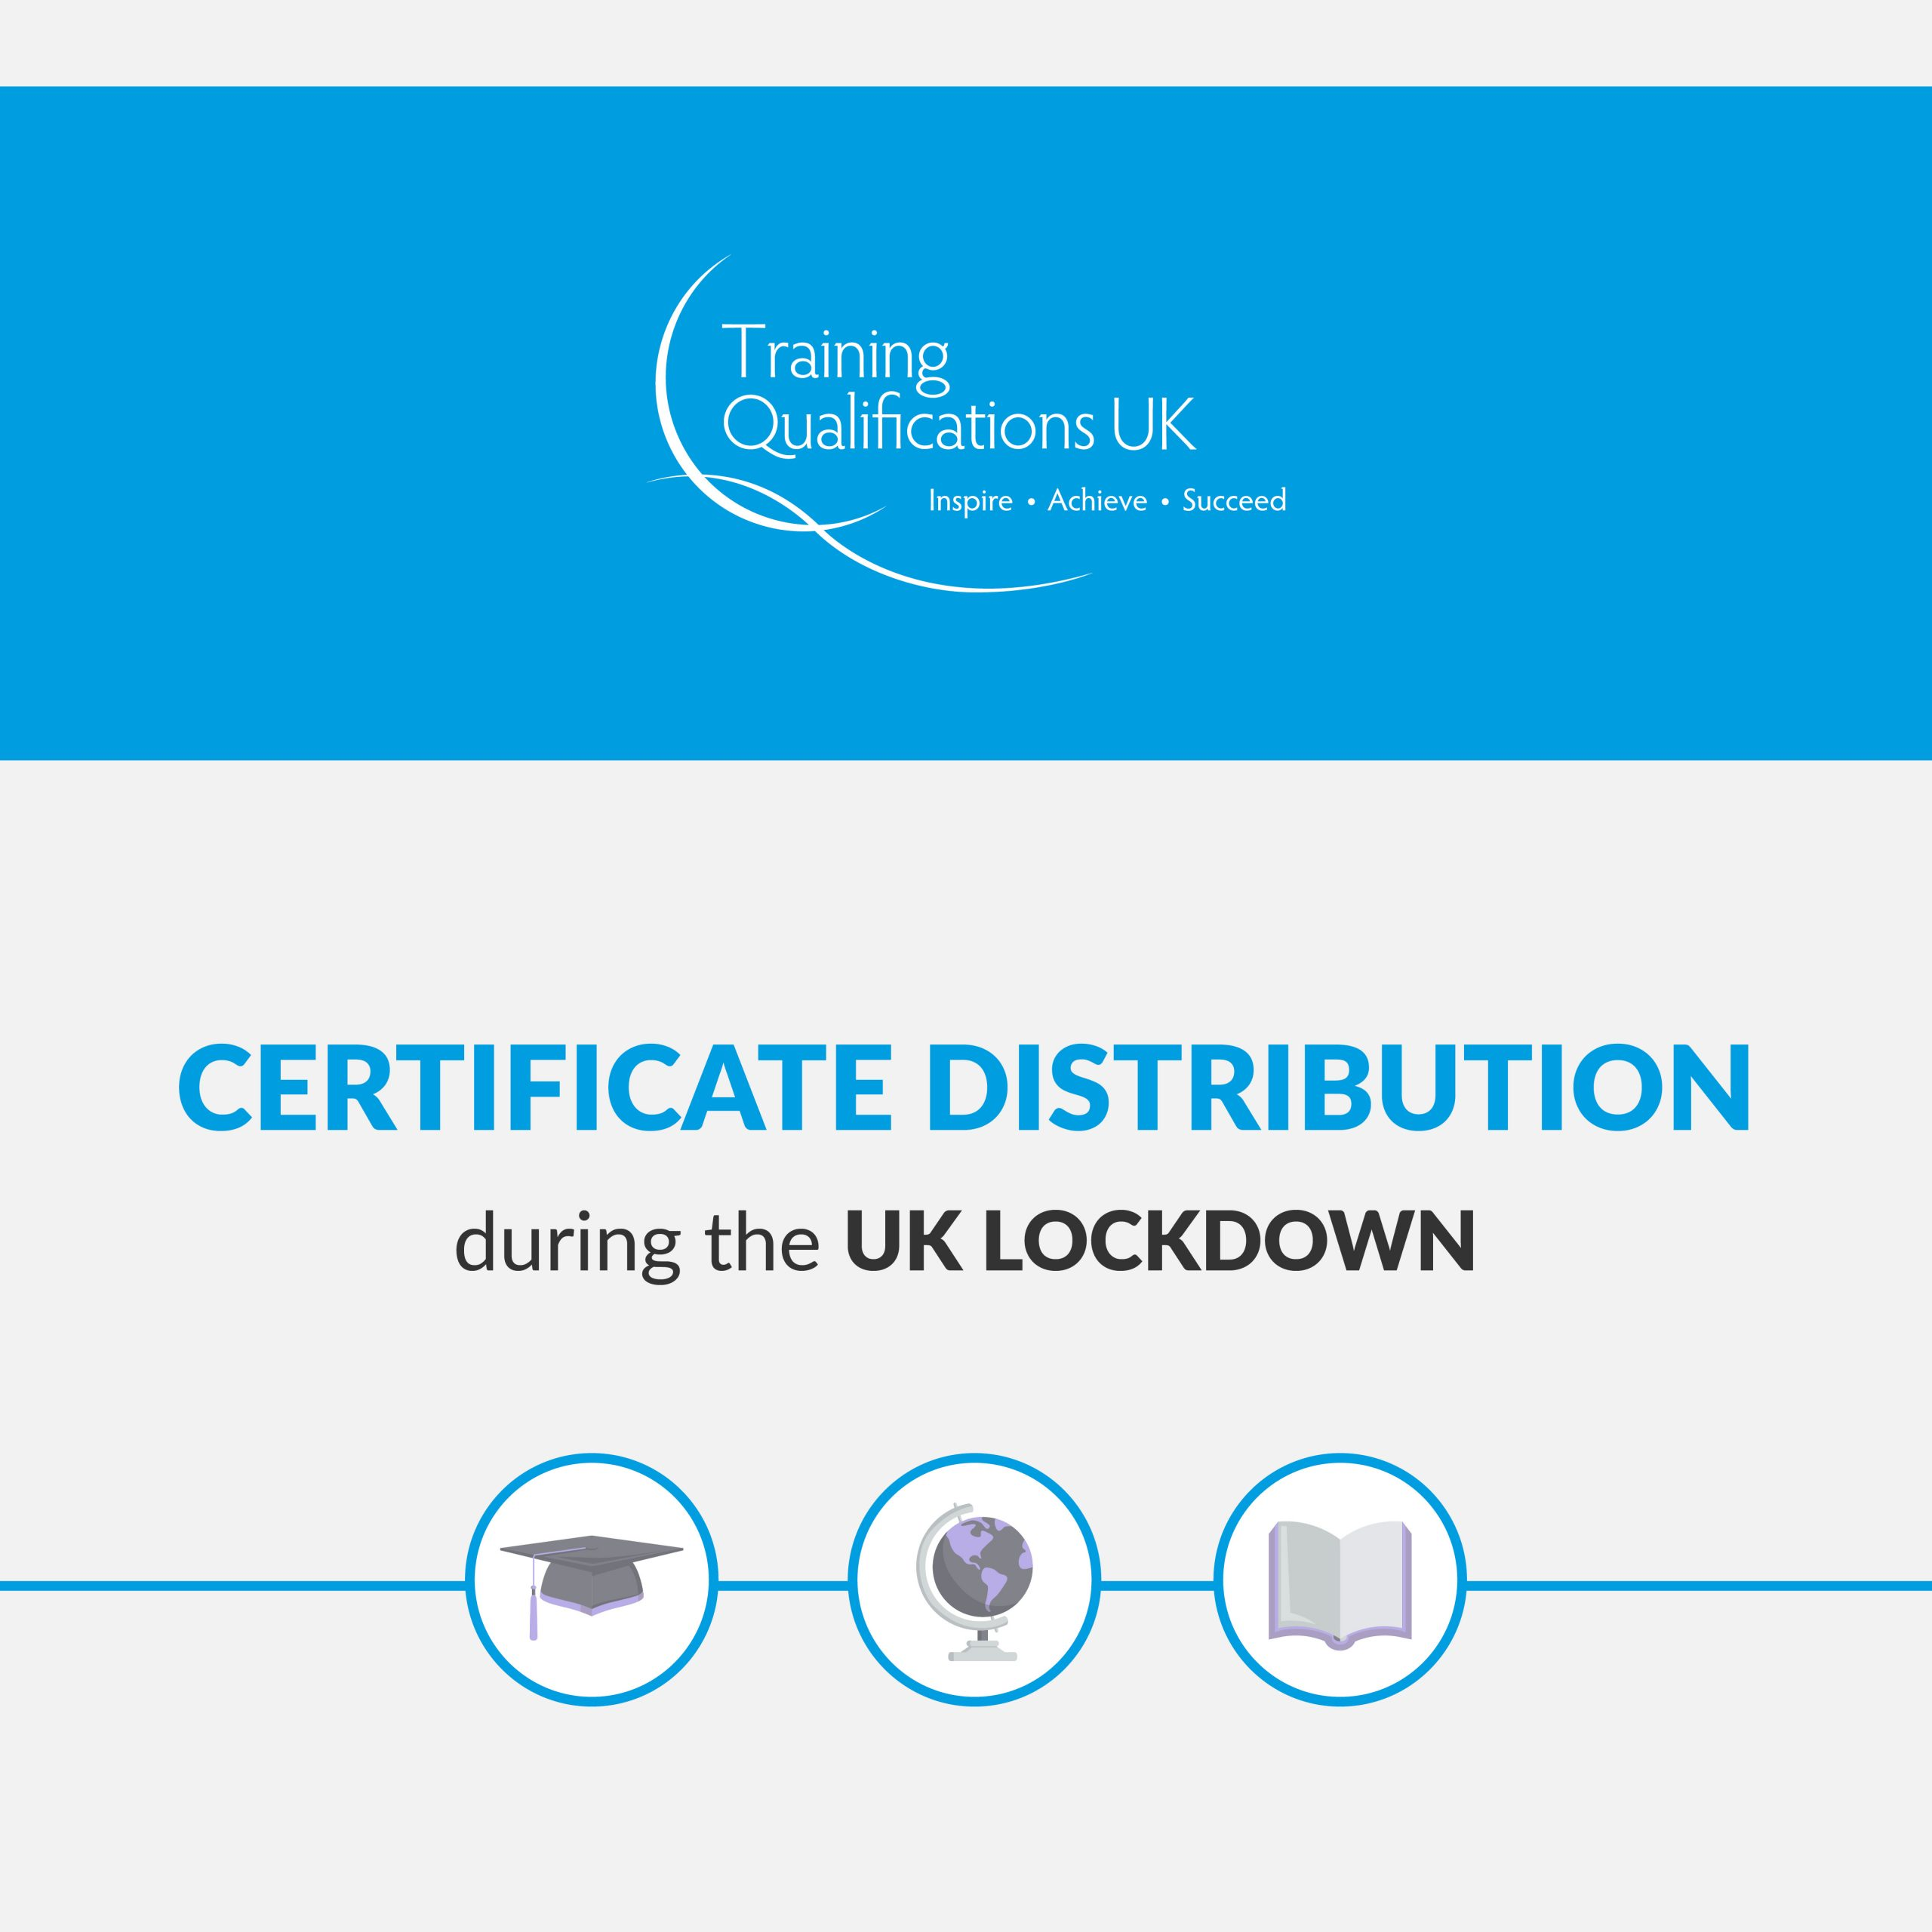 Coronavirus: Certificate distribution during the UK lockdown